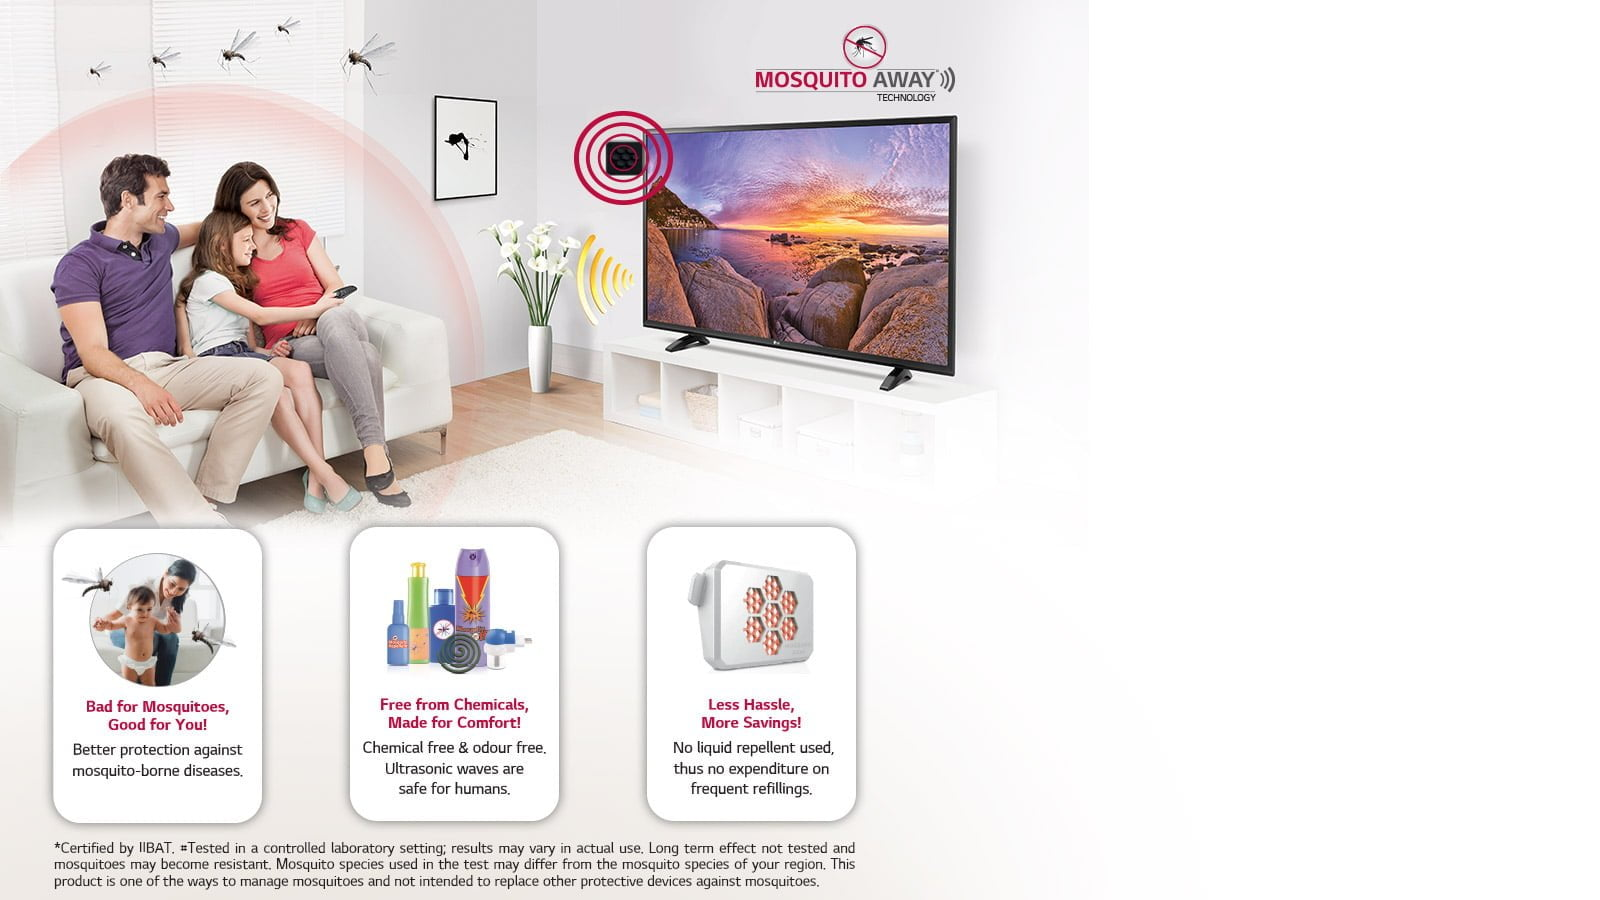 LG Mosquito Away Feature in LED TV